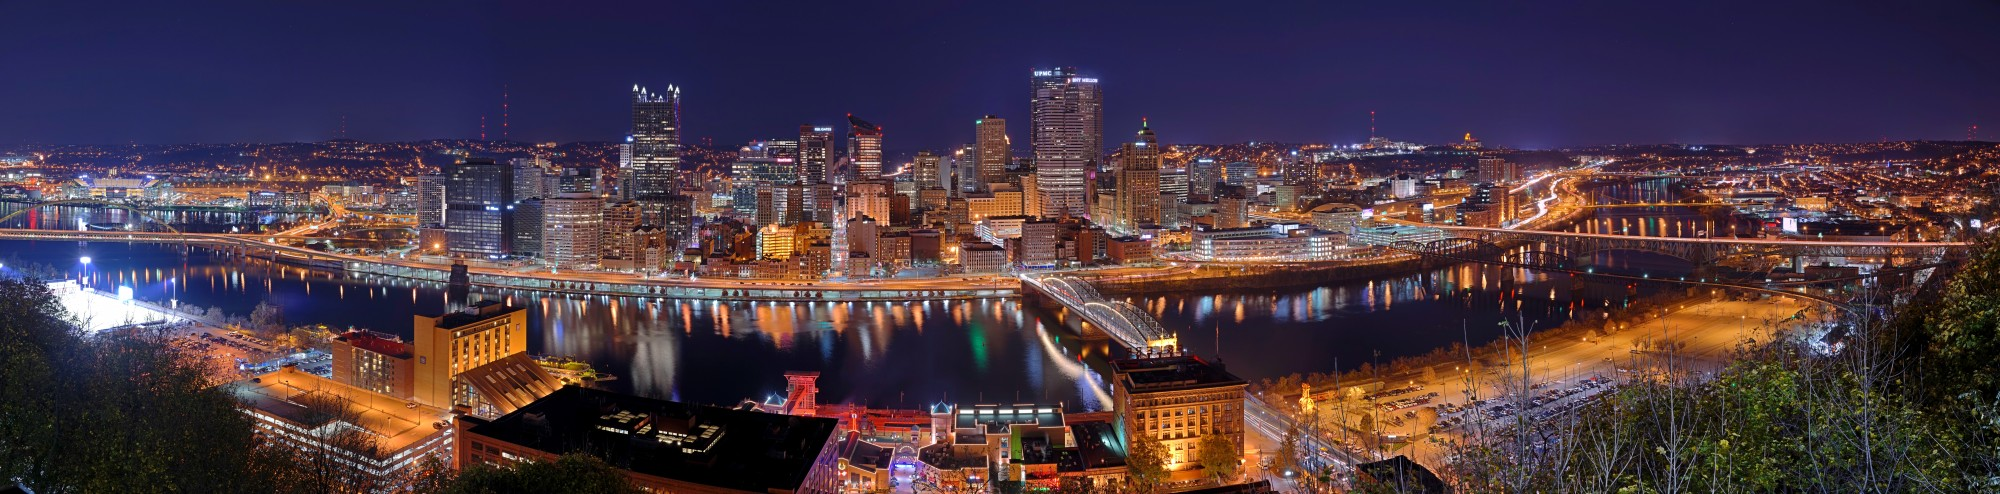 Pittsburgh skyline panorama at night